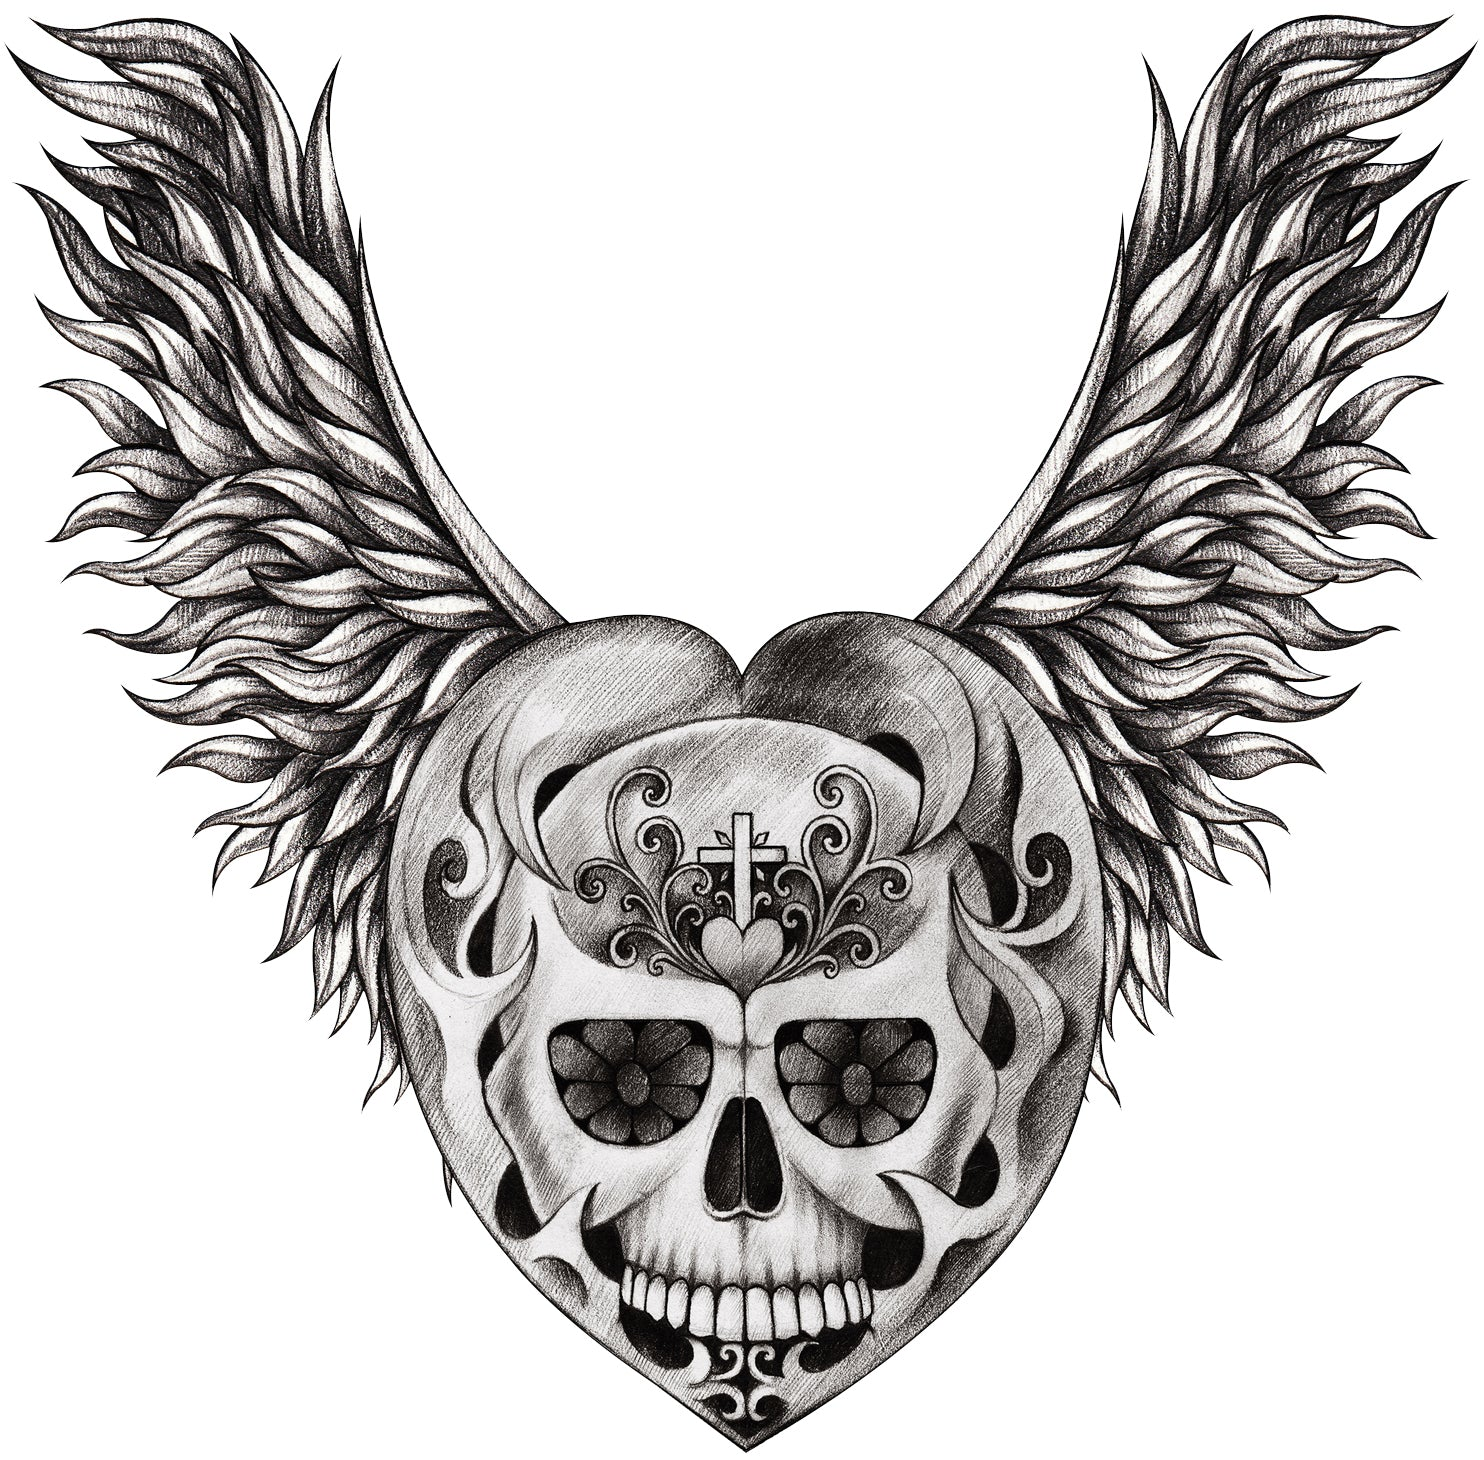 Pencil Sketch Floral Cross Heart Skull with Leaf Wings Vinyl Decal Sticker